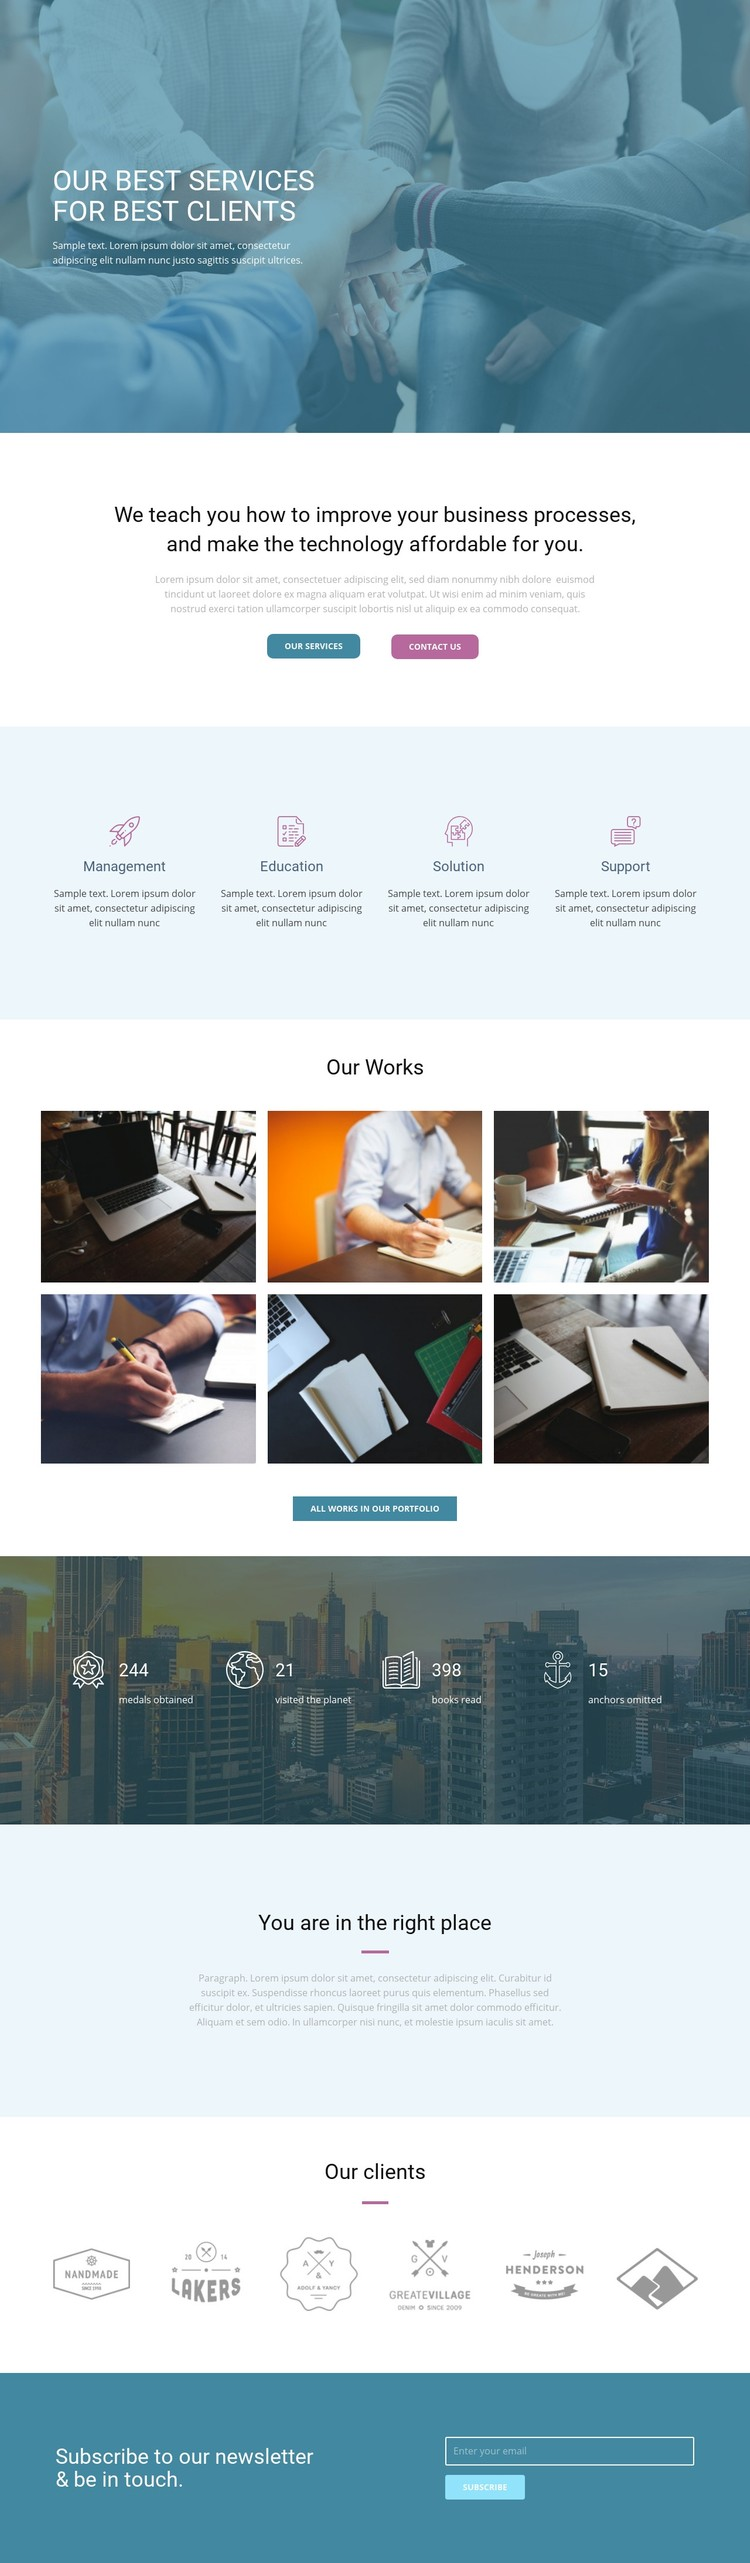 Best services for clients Website Creator